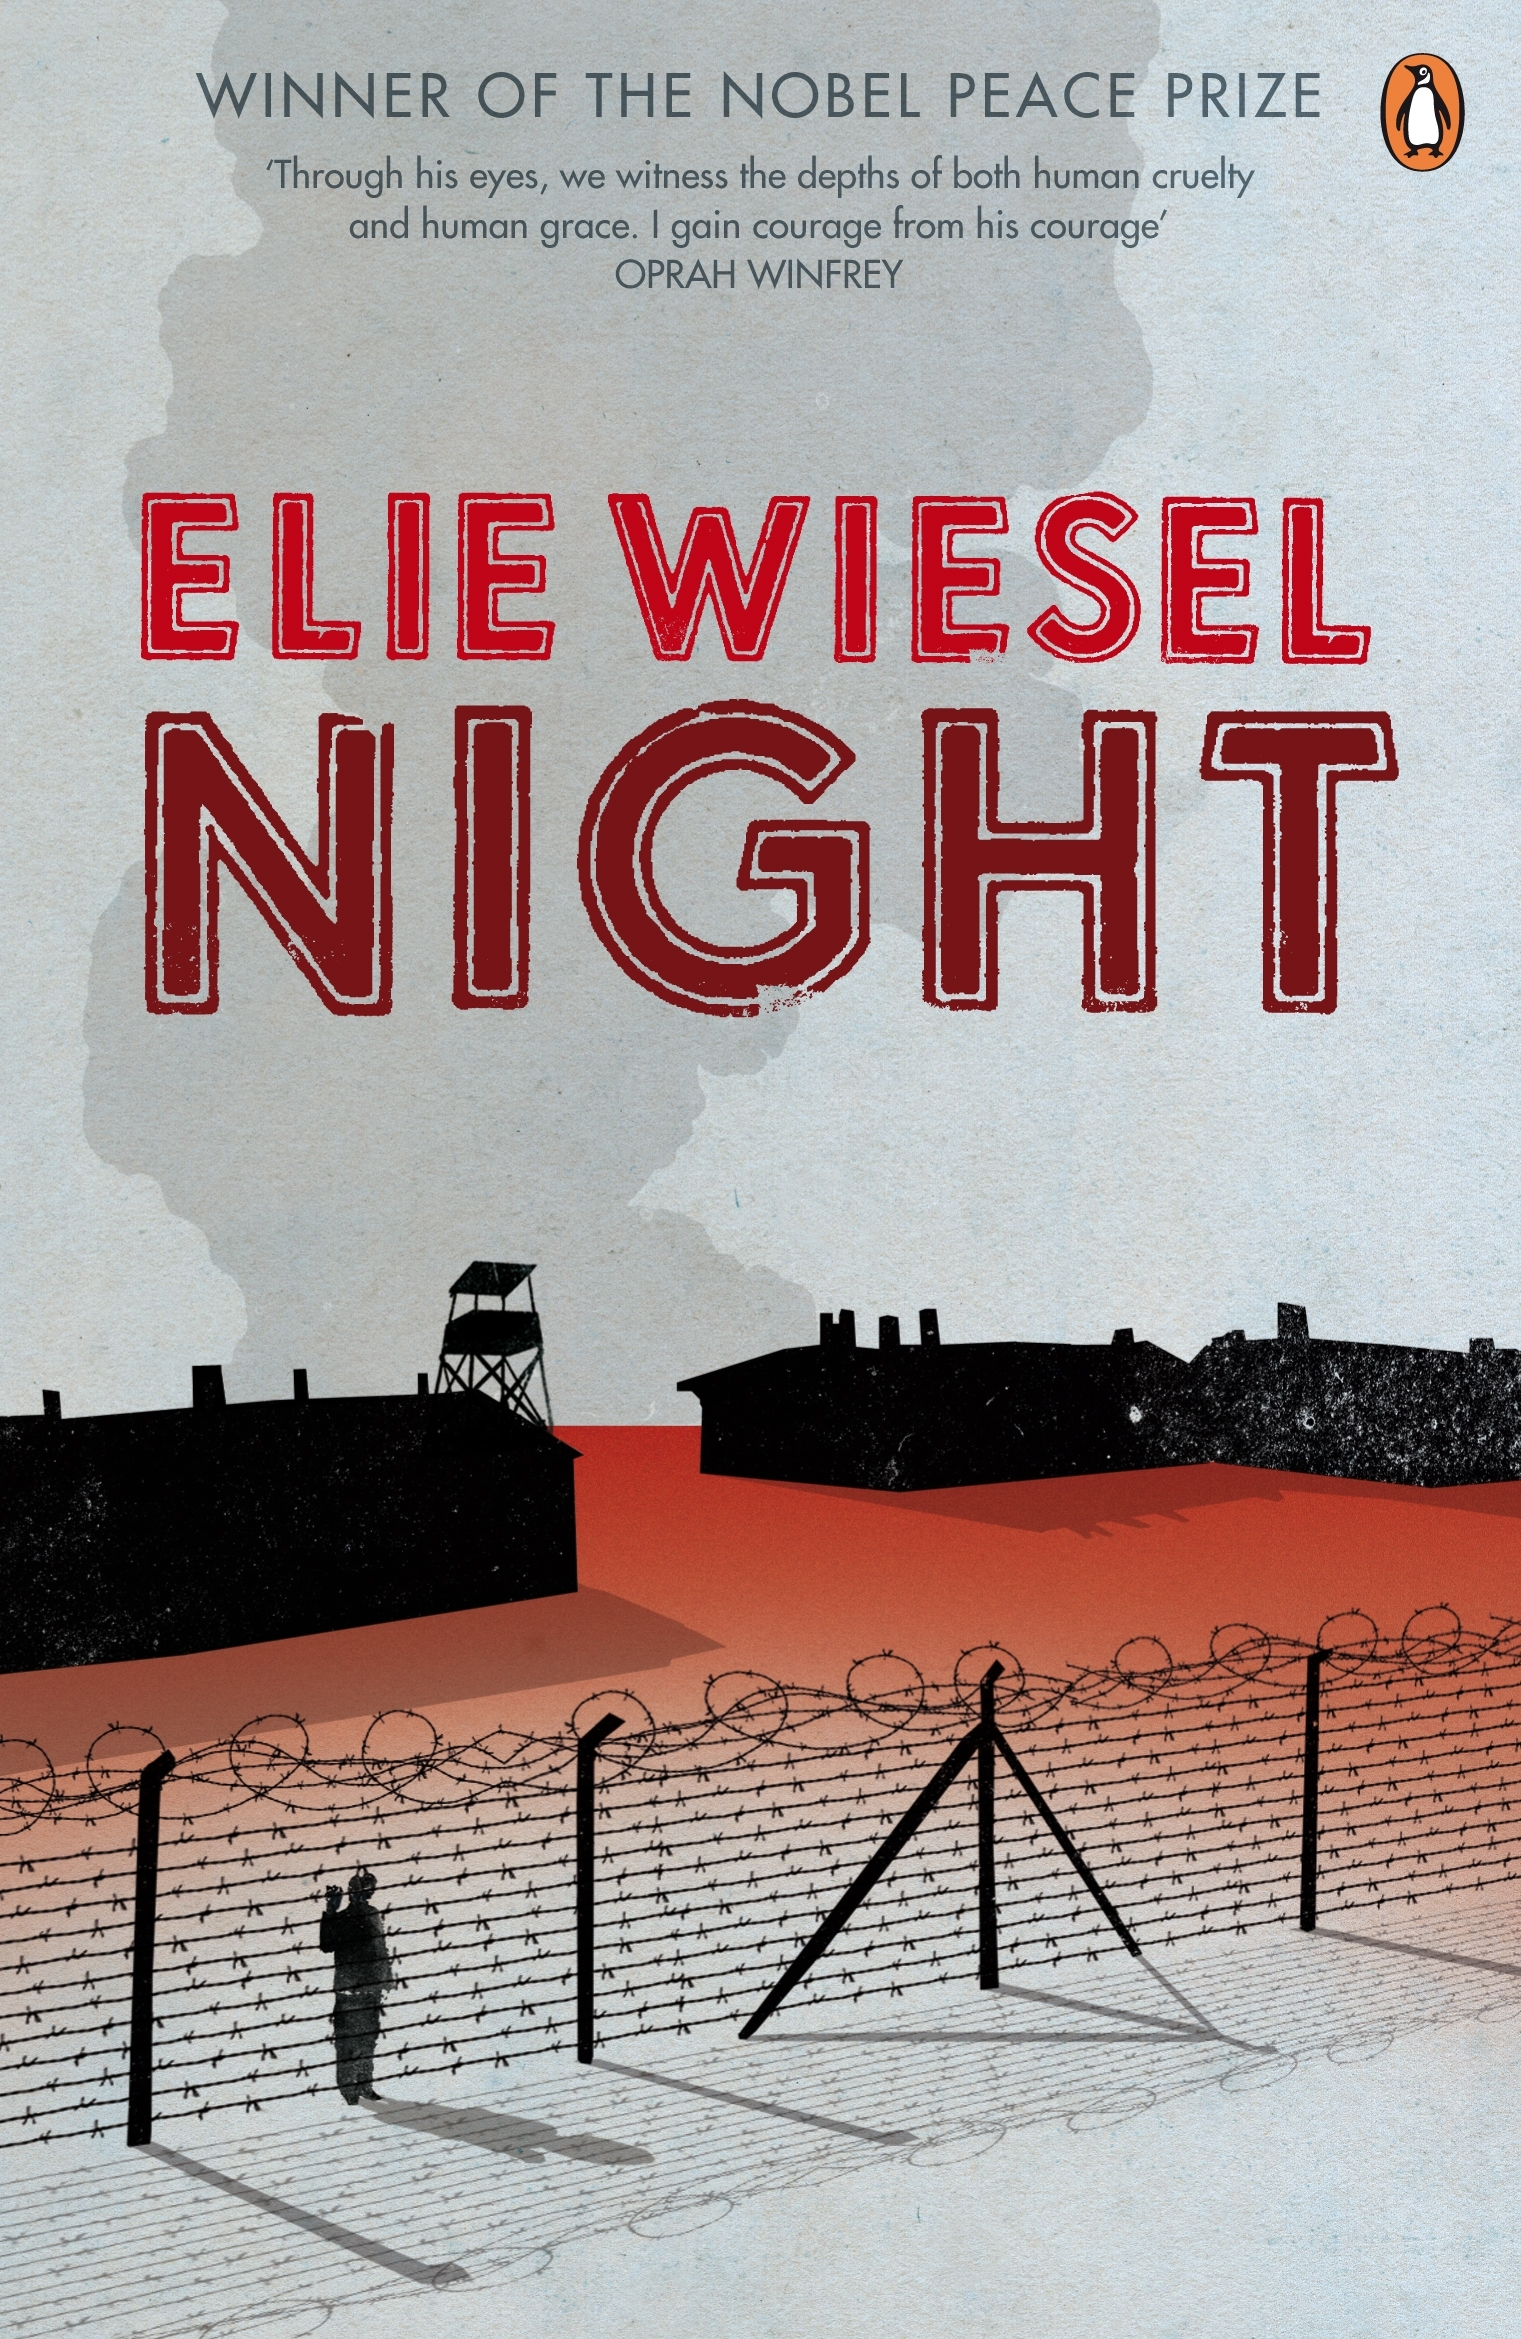 a description of the autobiography of elie wiesel a survivor of the holocaust Elie wiesel, who documented his experience of the holocaust in the best-selling memoir night and went on to become an influential author and nobel peace prize winner, died saturday at the age of .